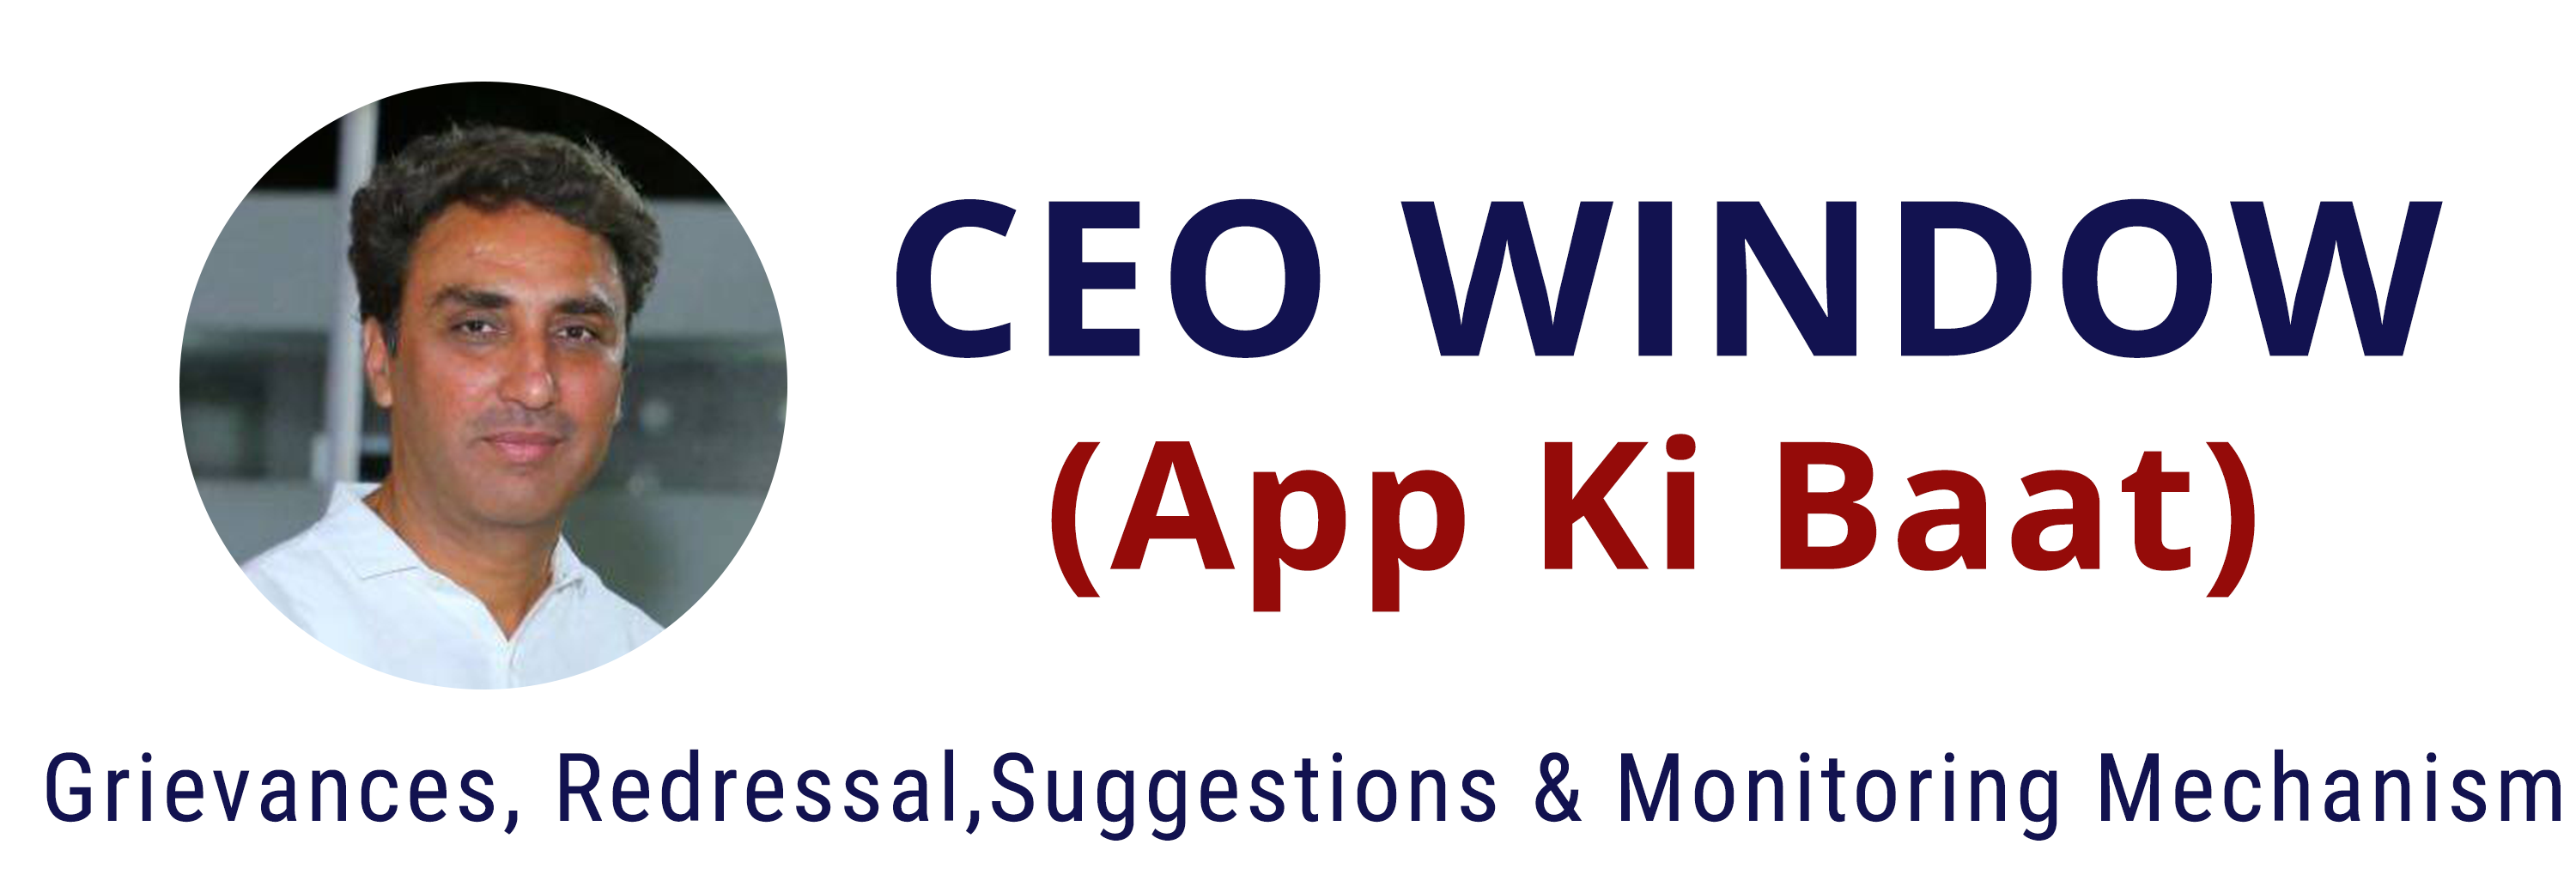 CEO WINDOW